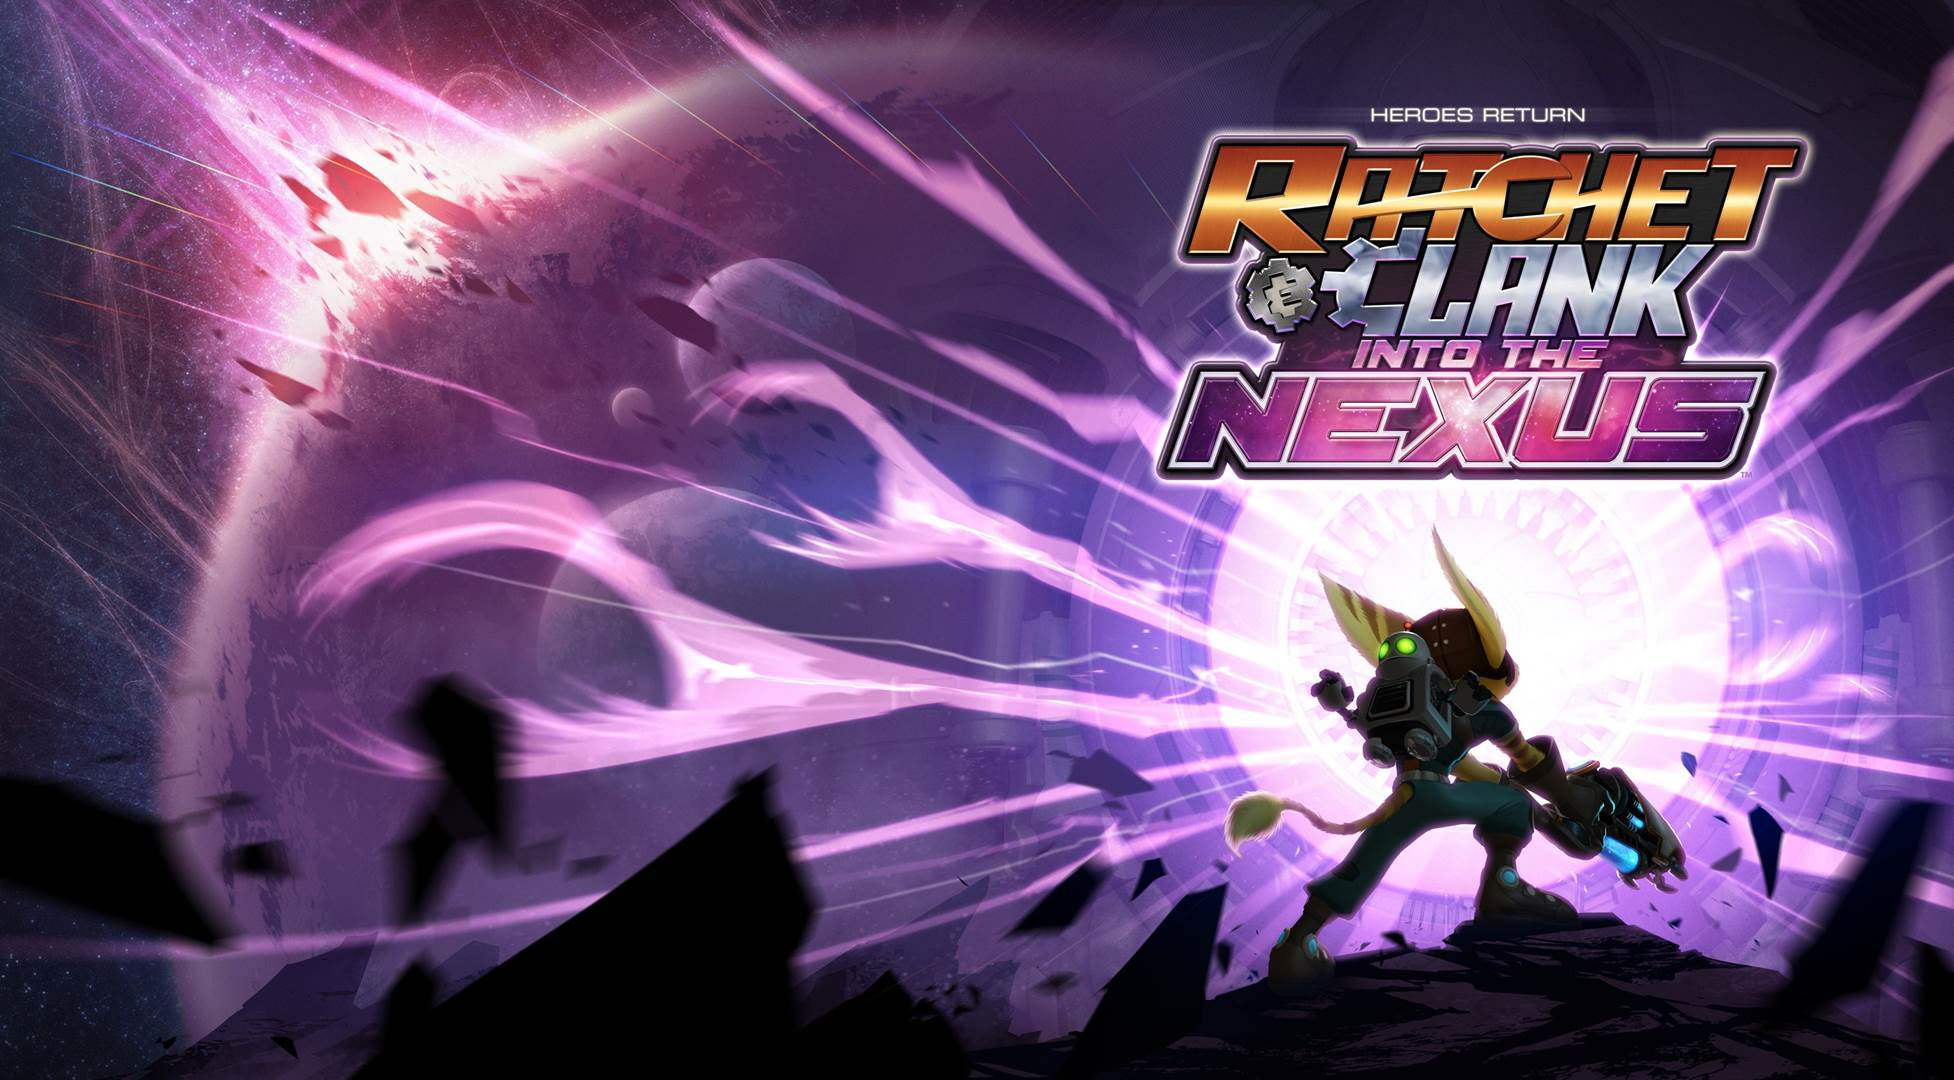 Ratchet-and-Clank-Into-the-Nexus-01